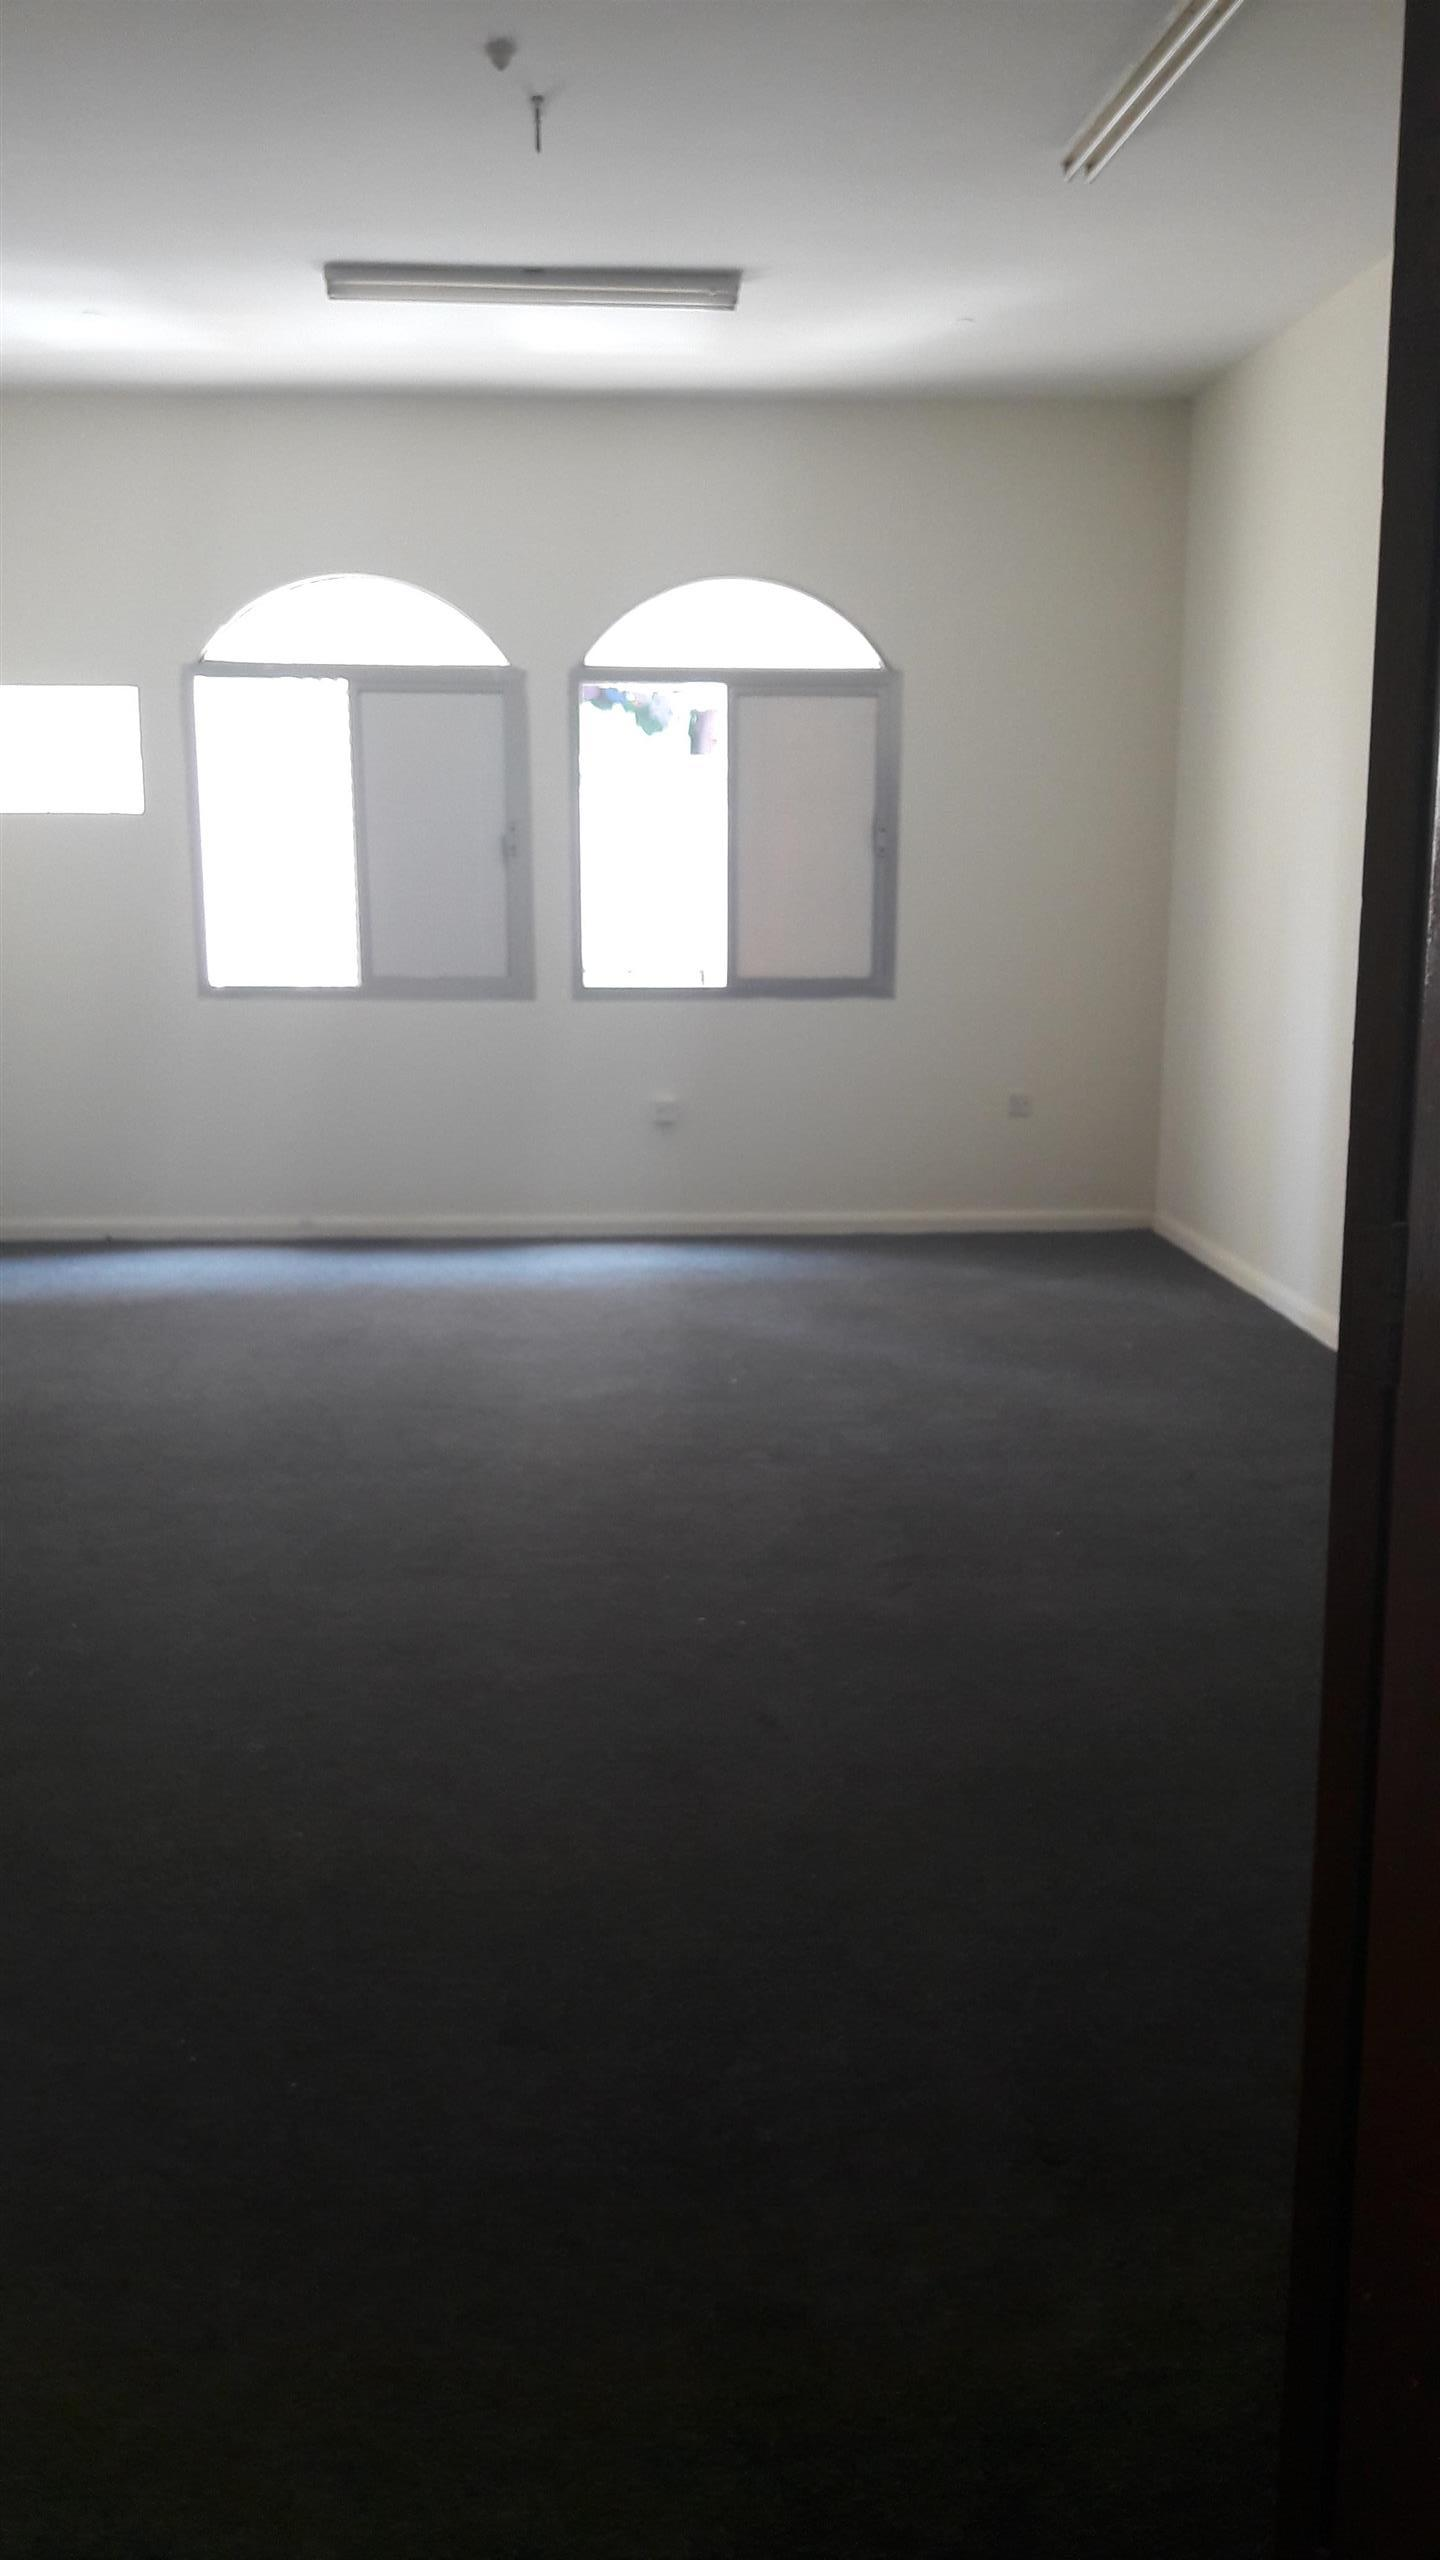 For Rent Office 3 BR + Hall + Kitchen + 2 Bath R - without commission